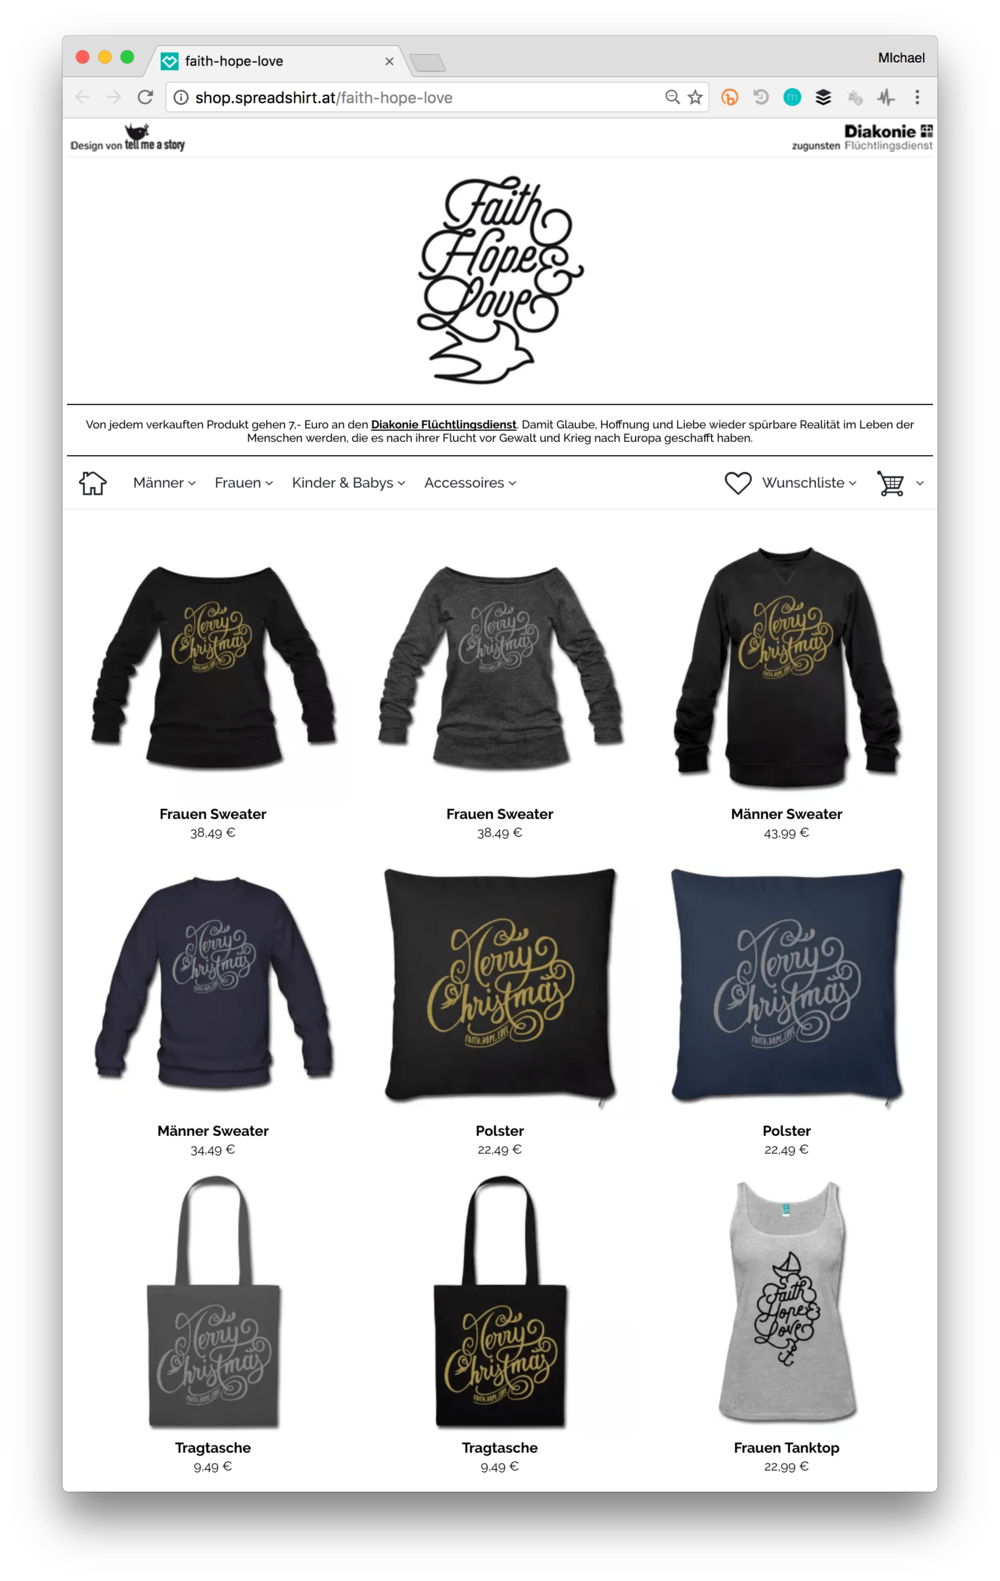 Faith-Hope-Love Webshop Screenshot mit Produkten